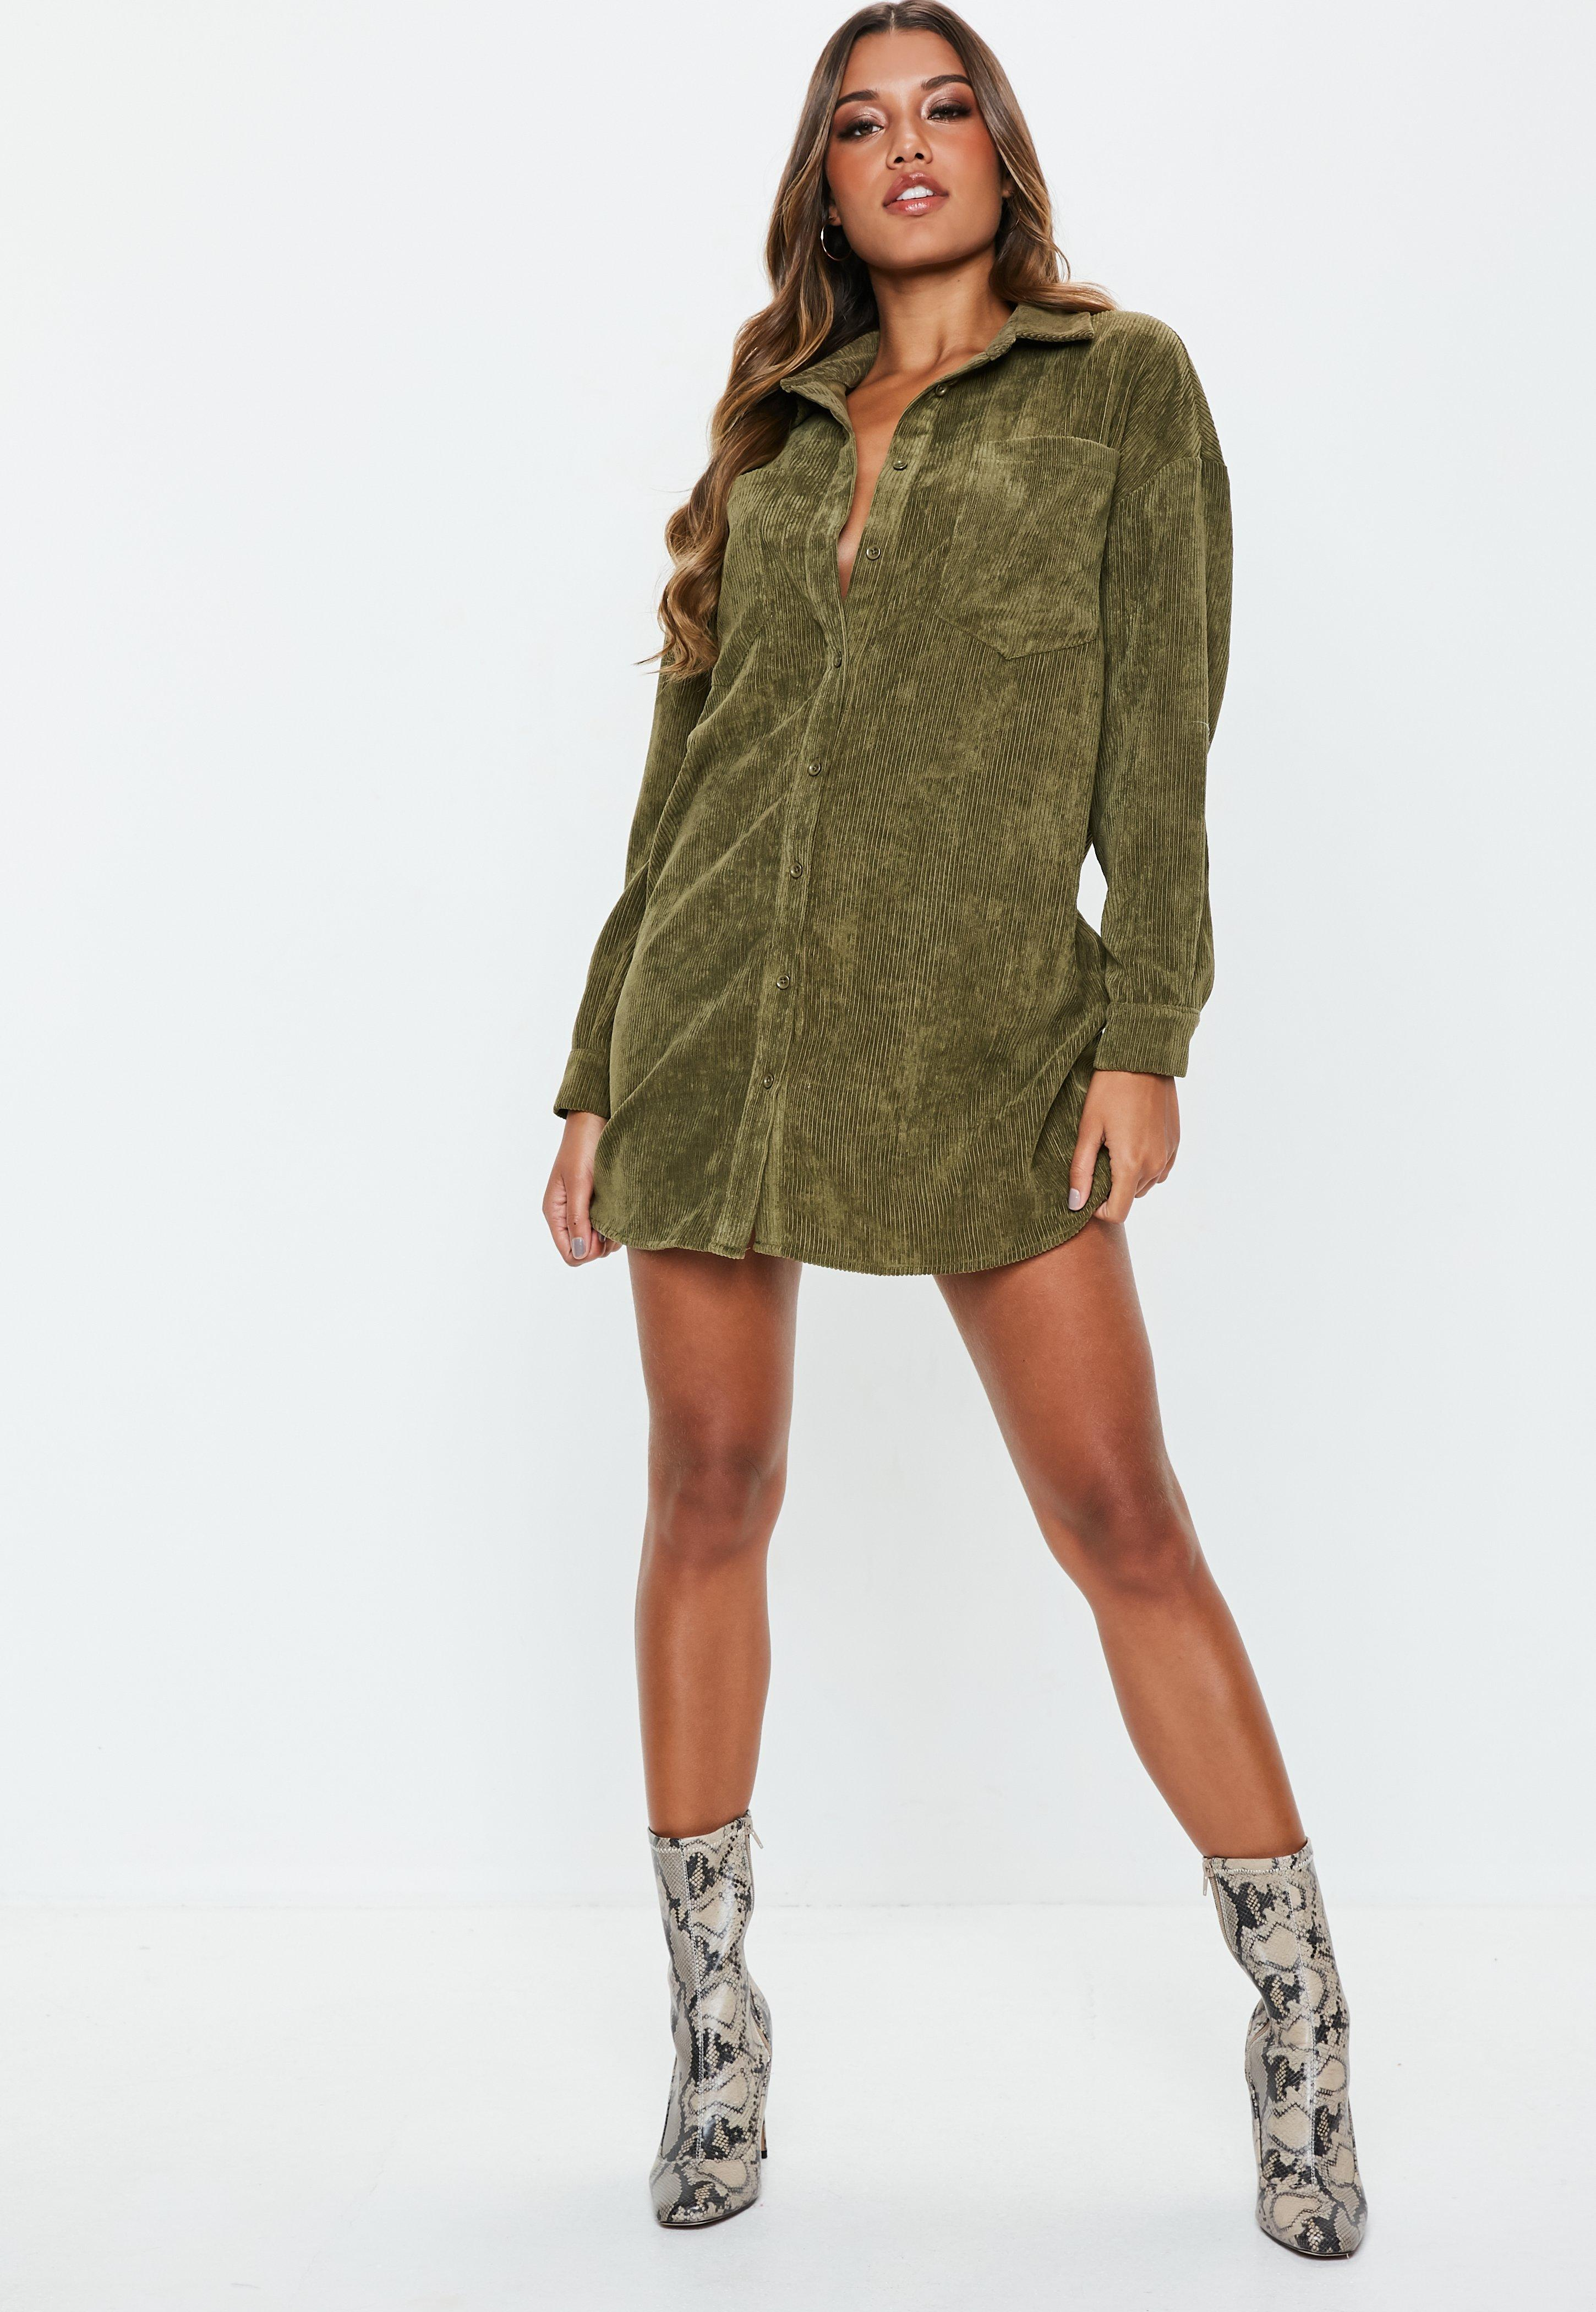 5799d2b65b25 Petite Clothing, Womens Petite Clothes Online - Missguided